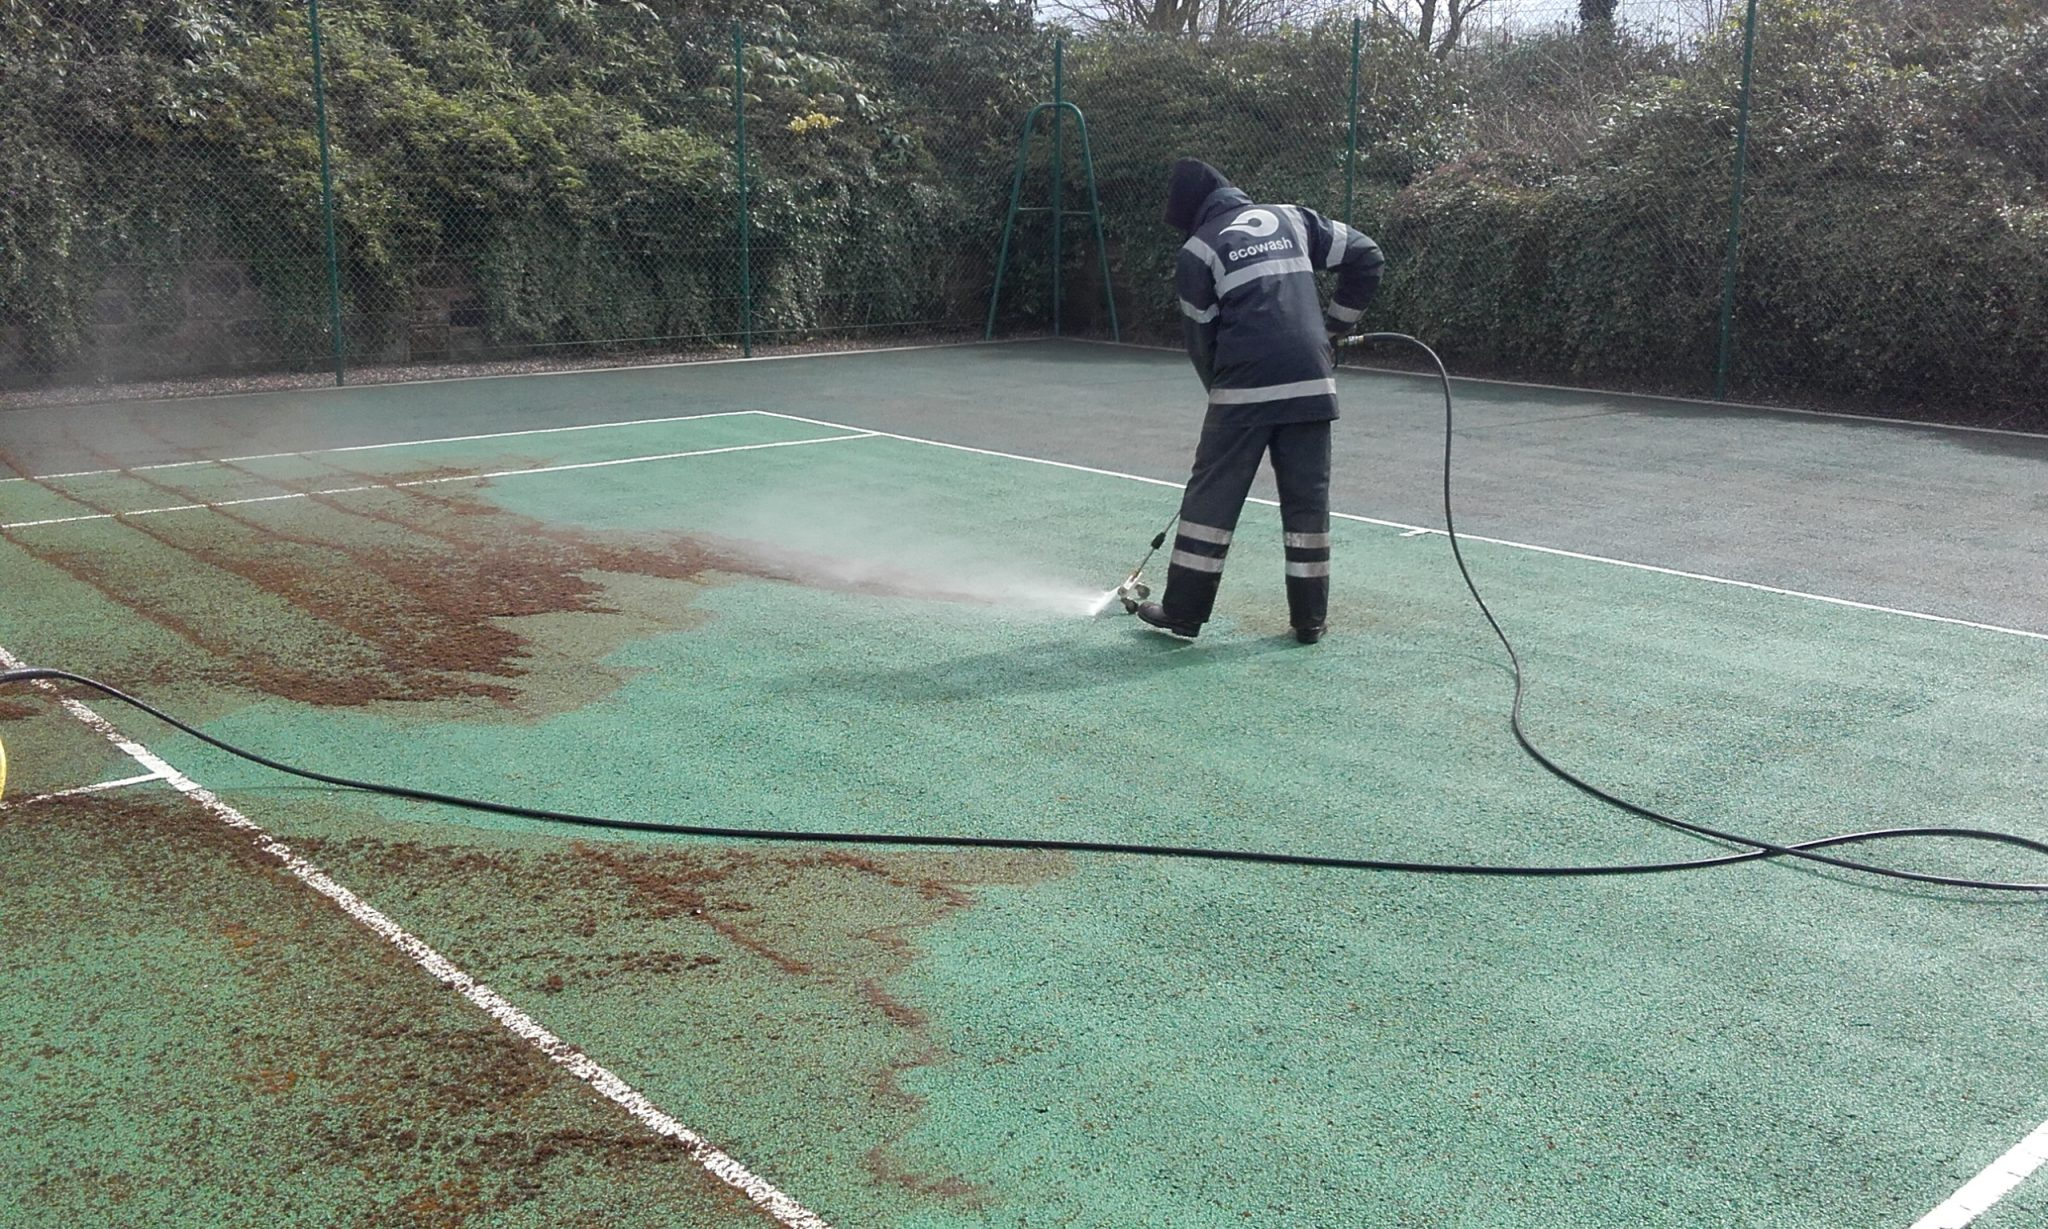 20160407_130615 Tennis Court Cleaning